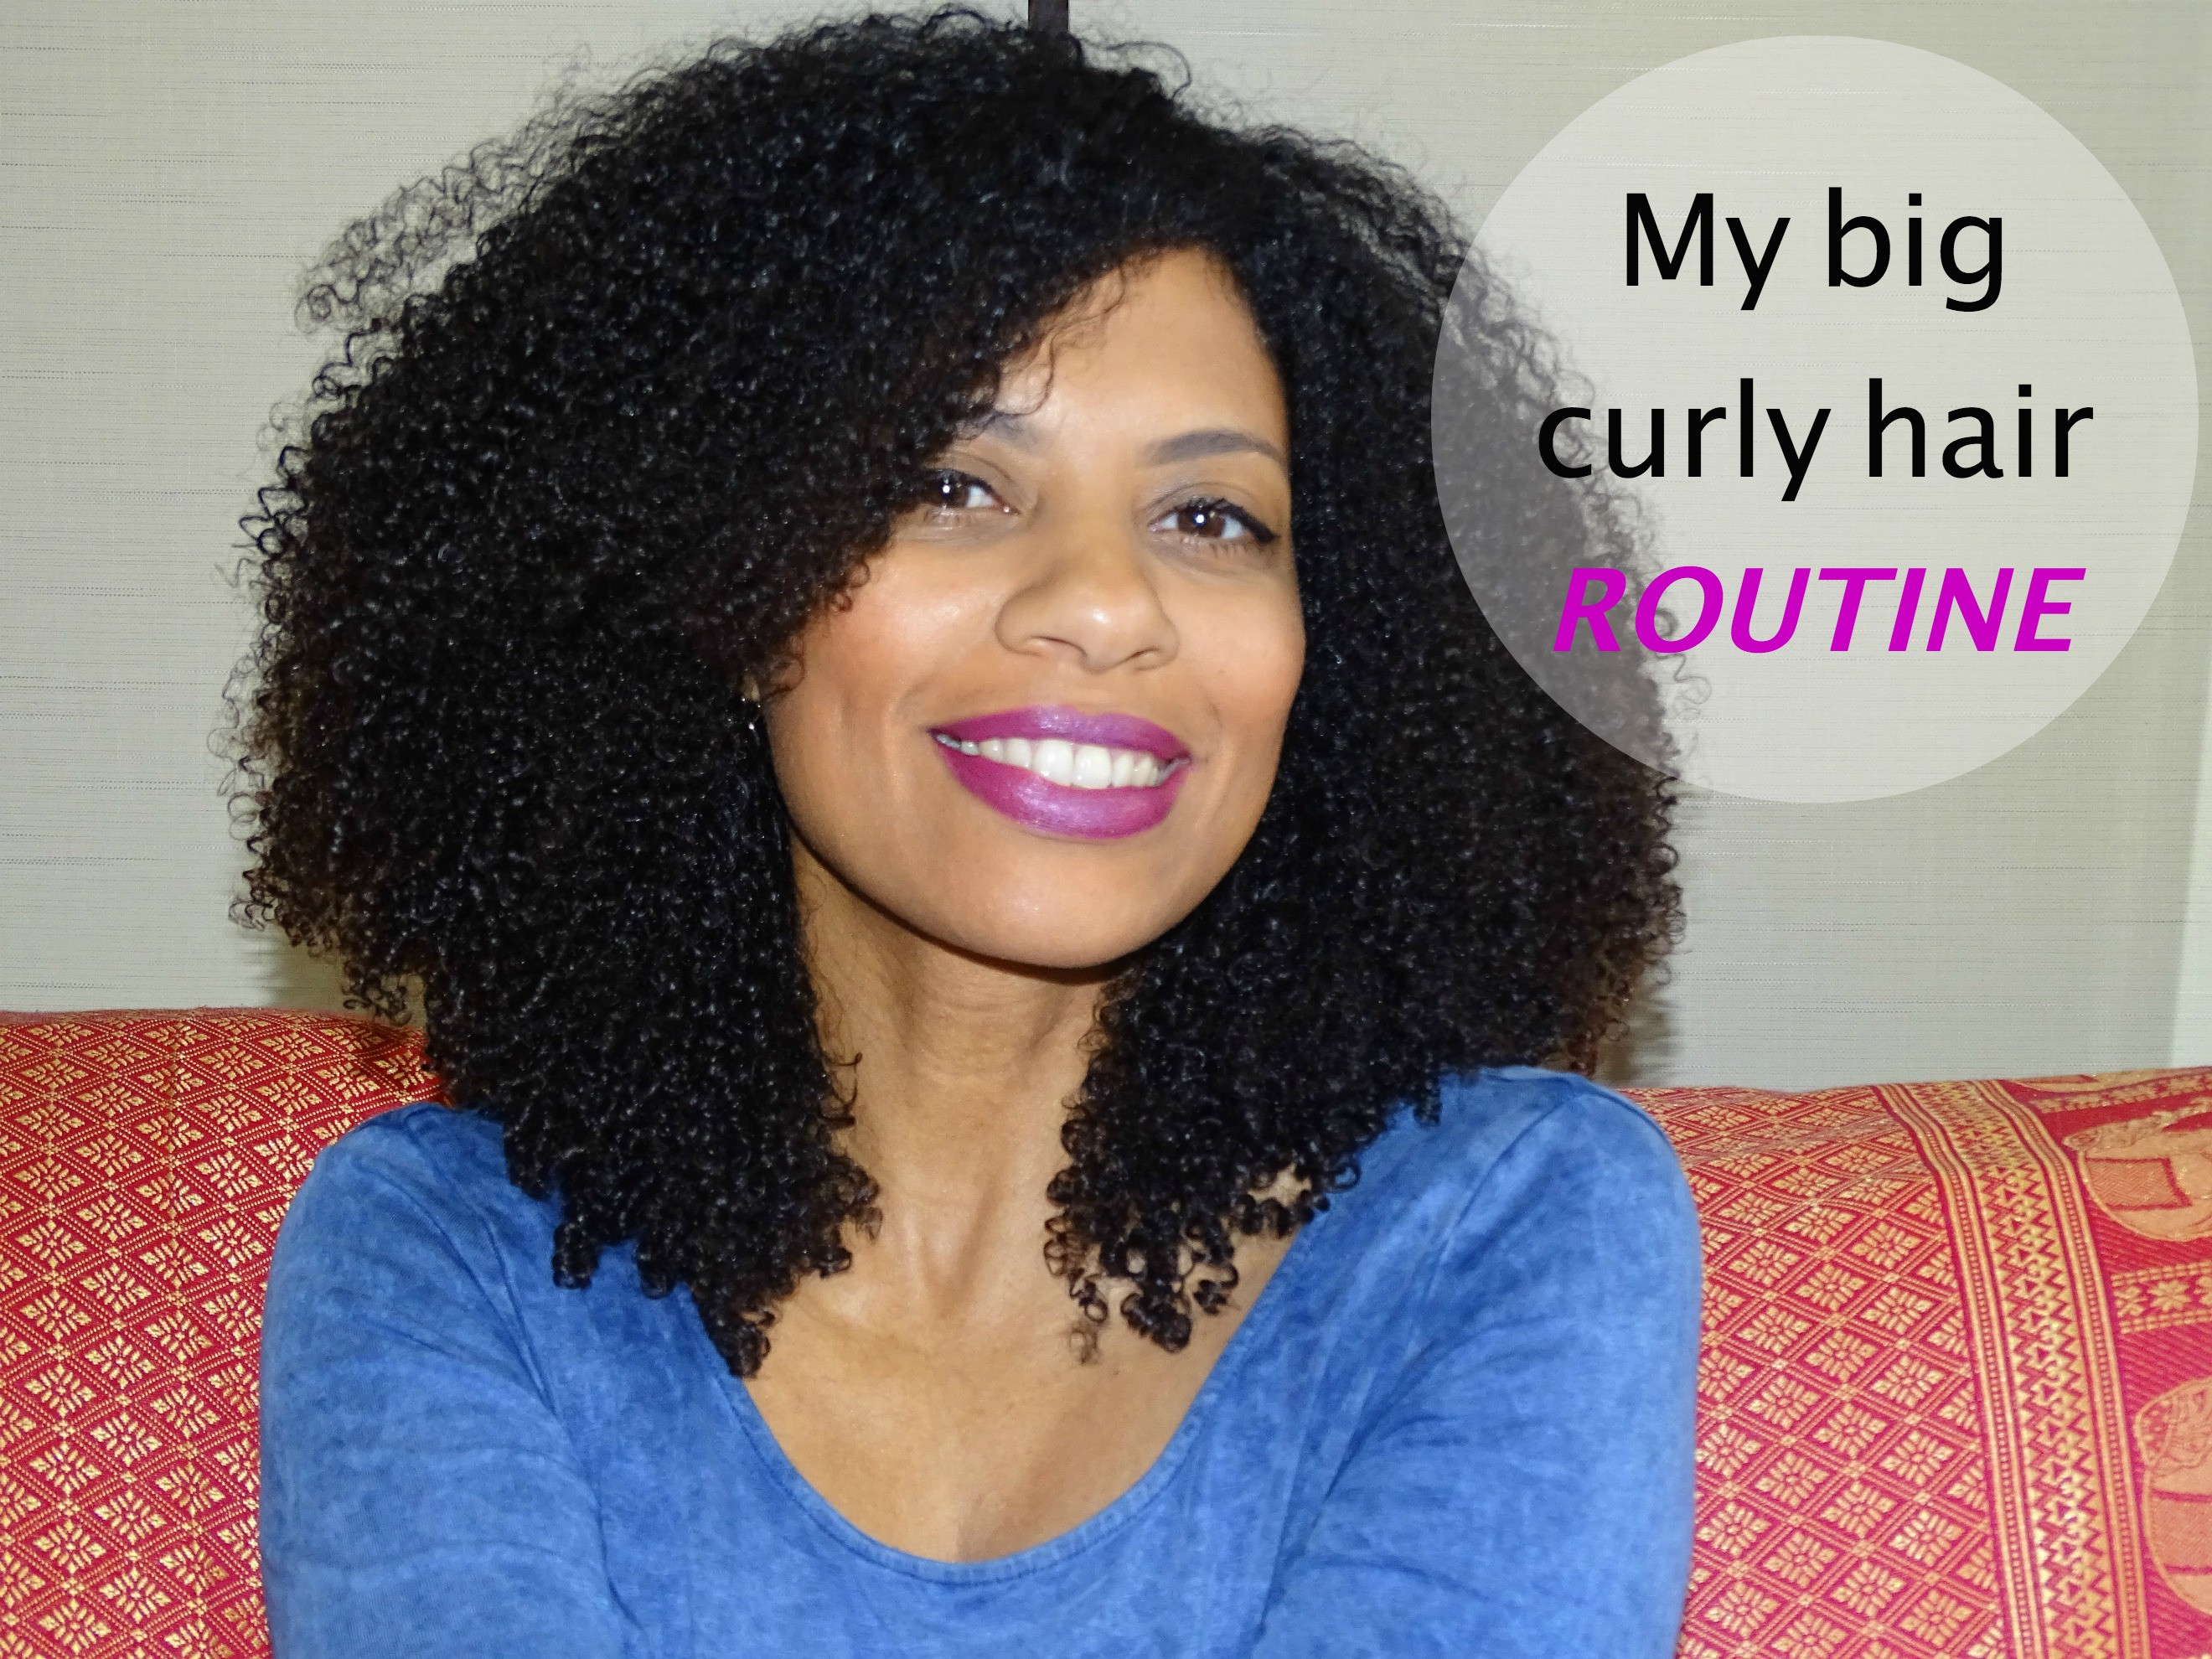 Hair Style Curly: My Big Curly Hair Routine On Natural Hair